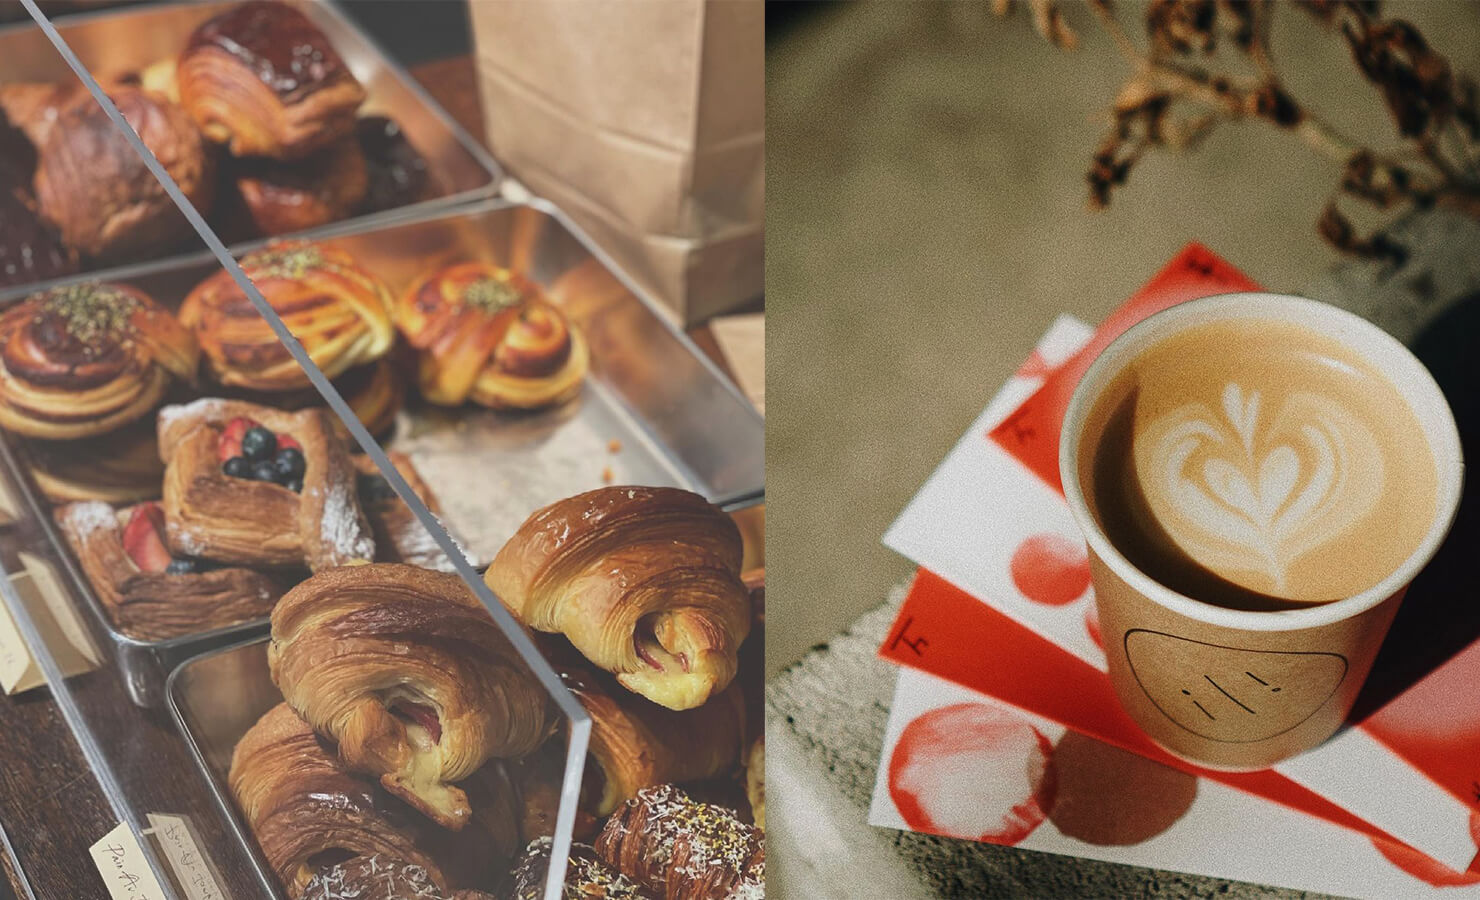 bloomthis-5-plant-flower-cafes-you-have-to-visit-08-one-half-pastries-and-coffee